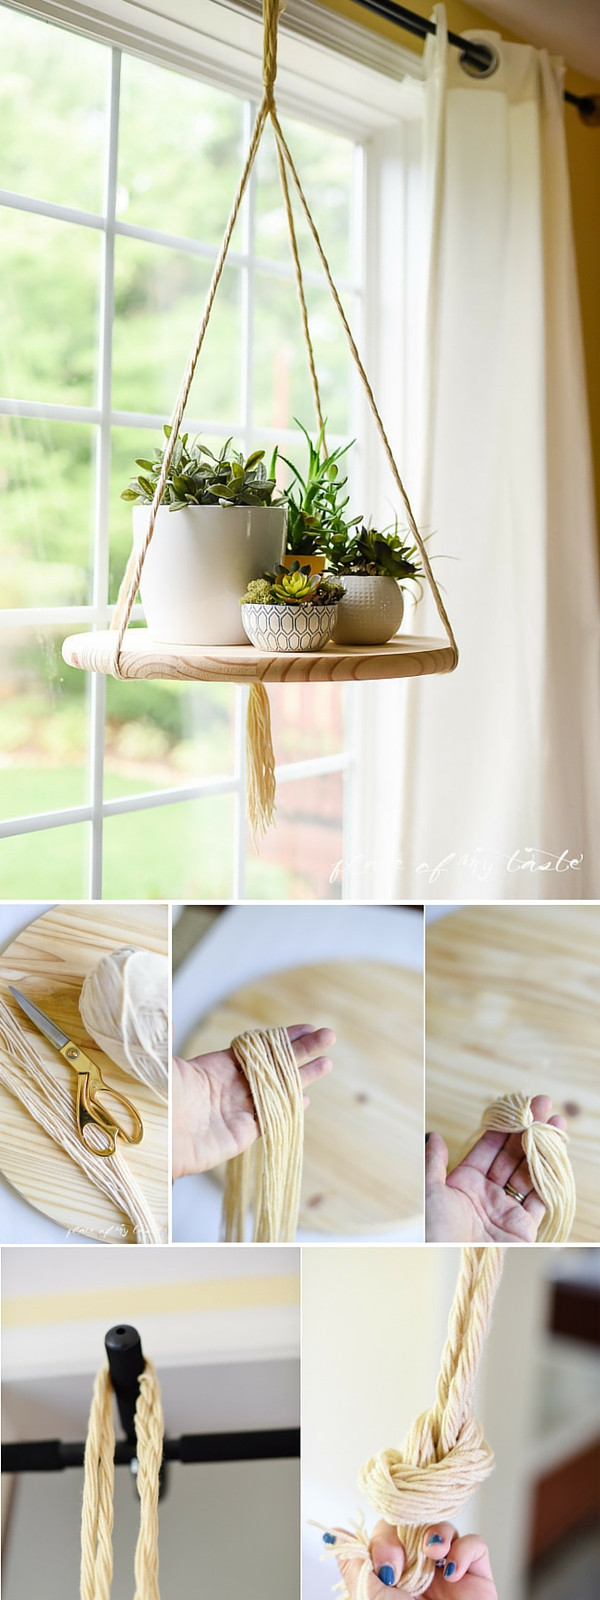 DIY Home Decor Pinterest  DIY FLOATING SHELF to display your plants or other decor items